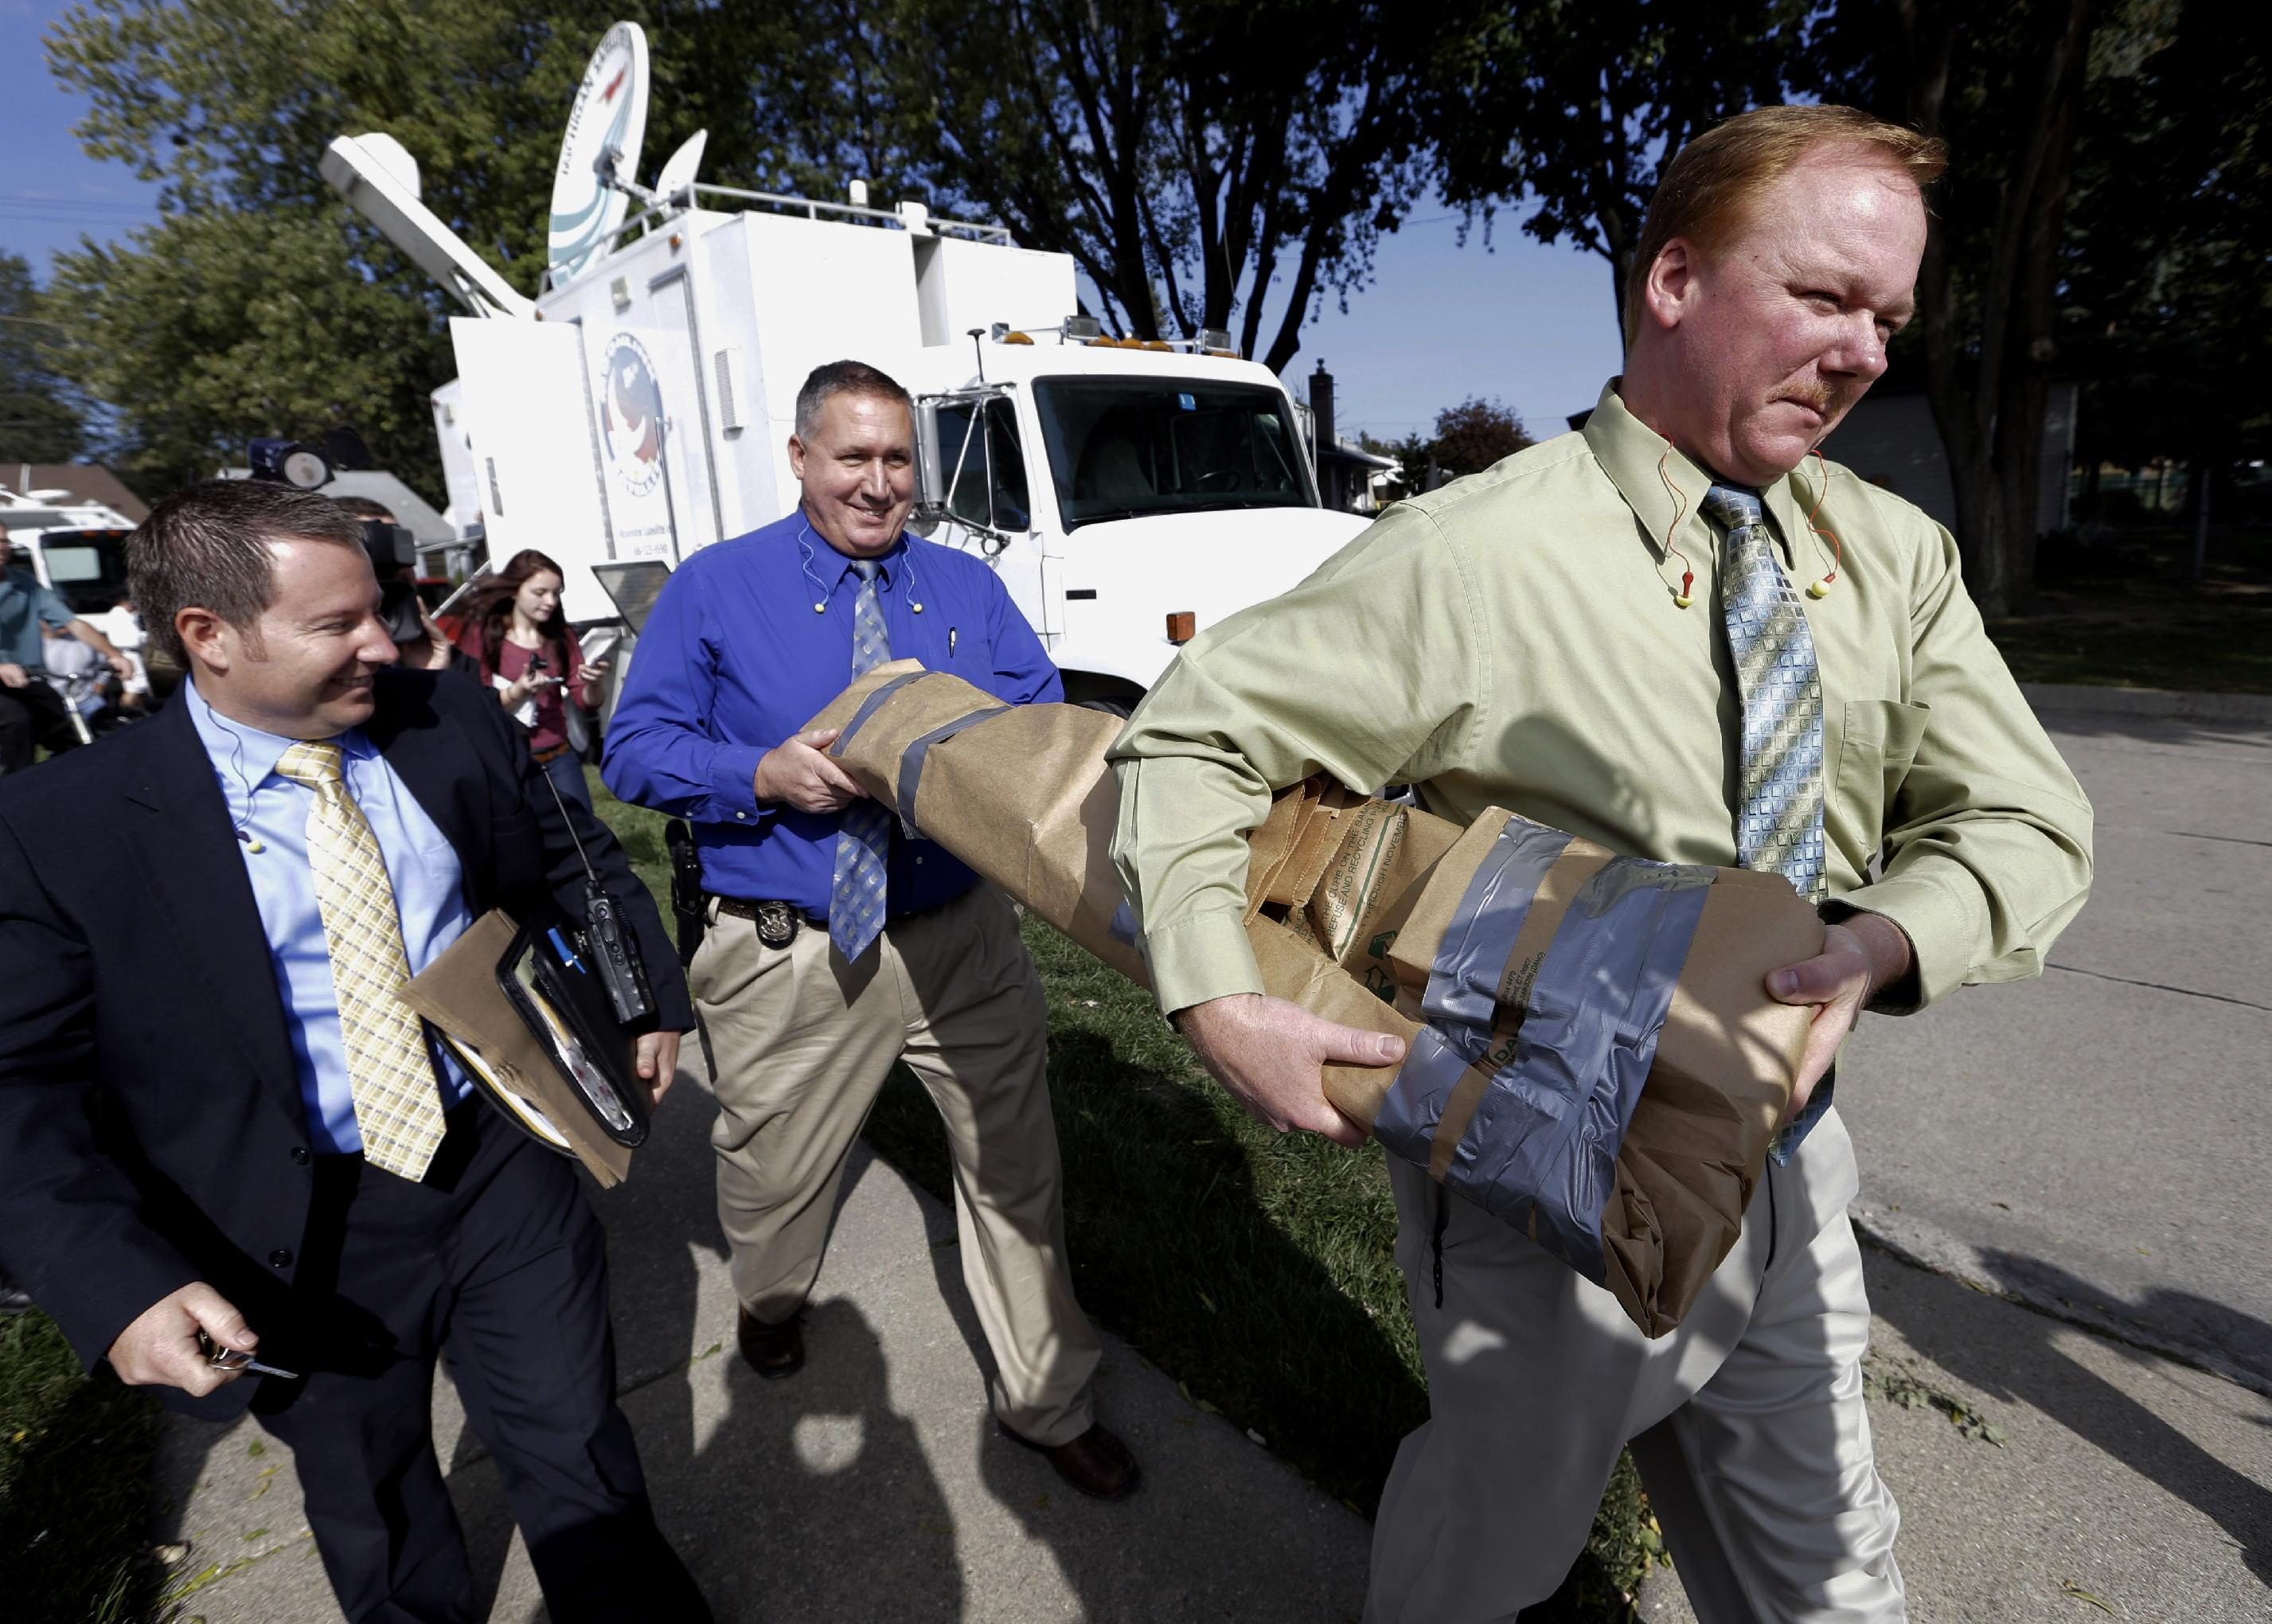 Roseville Police Department detectives carry soil samples removed from a shed floor of a Roseville, Mich., home Friday, Sept. 28, 2012. Police have been told by a source that former Teamsters boss Jimmy Hoffa may be buried beneath a driveway. (AP Photo/Paul Sancya)